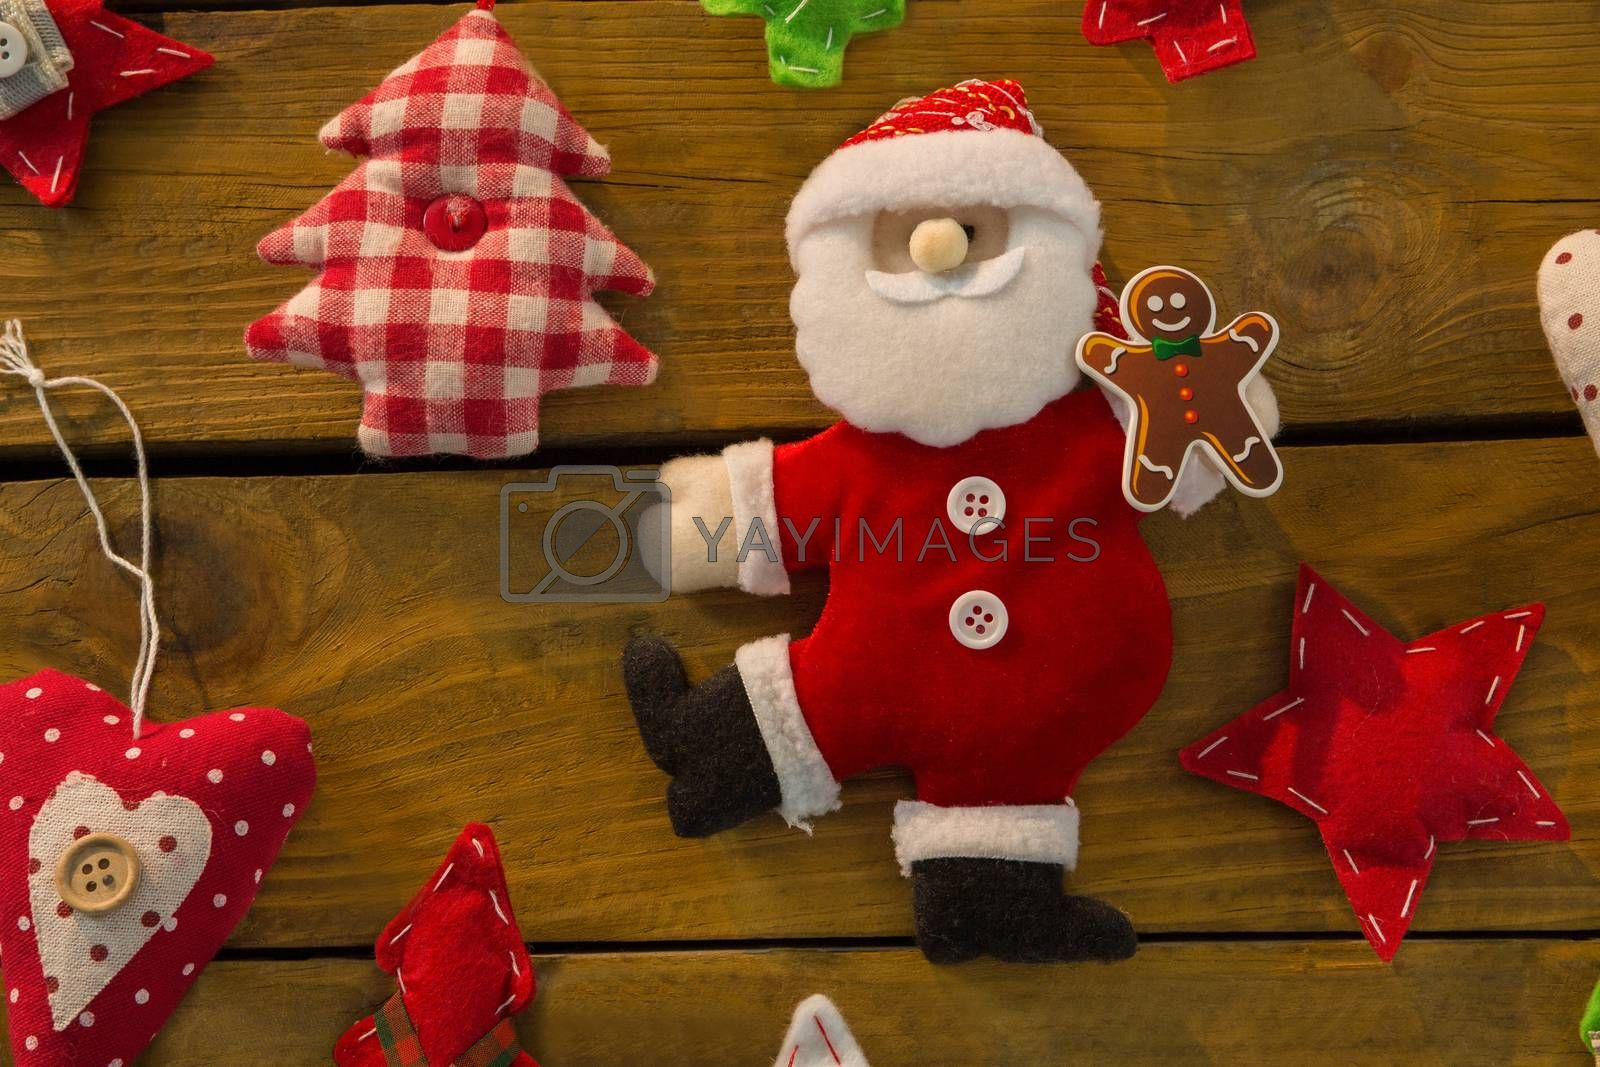 Christmas decorations on table by Wavebreakmedia